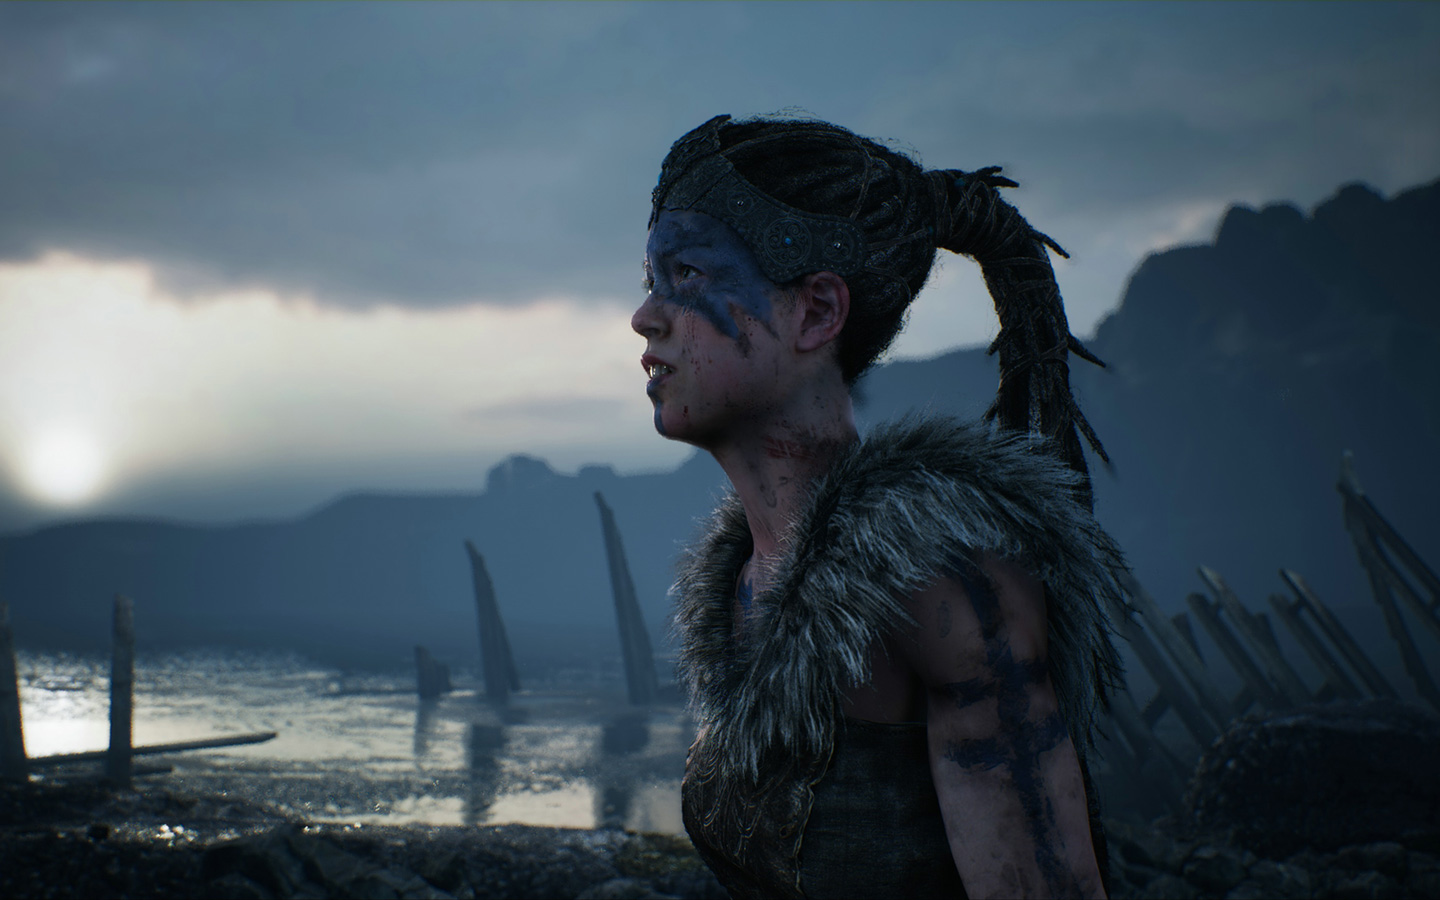 Free Hellblade: Senua's Sacrifice Wallpaper in 1440x900